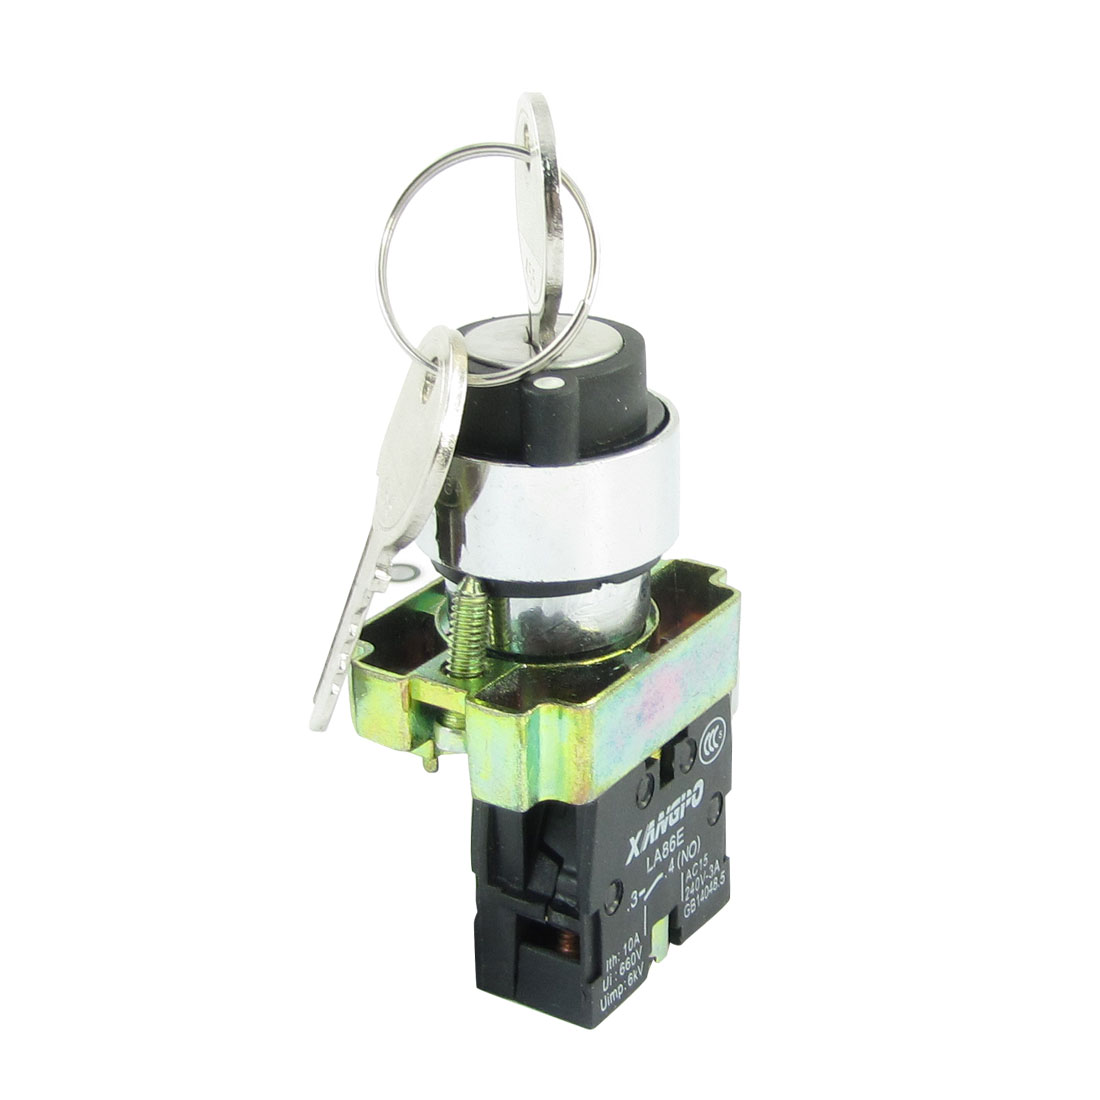 AC 240V 3A 1NO LA86E-BG21 Key Rotary Start Loking Style Push Button Switch